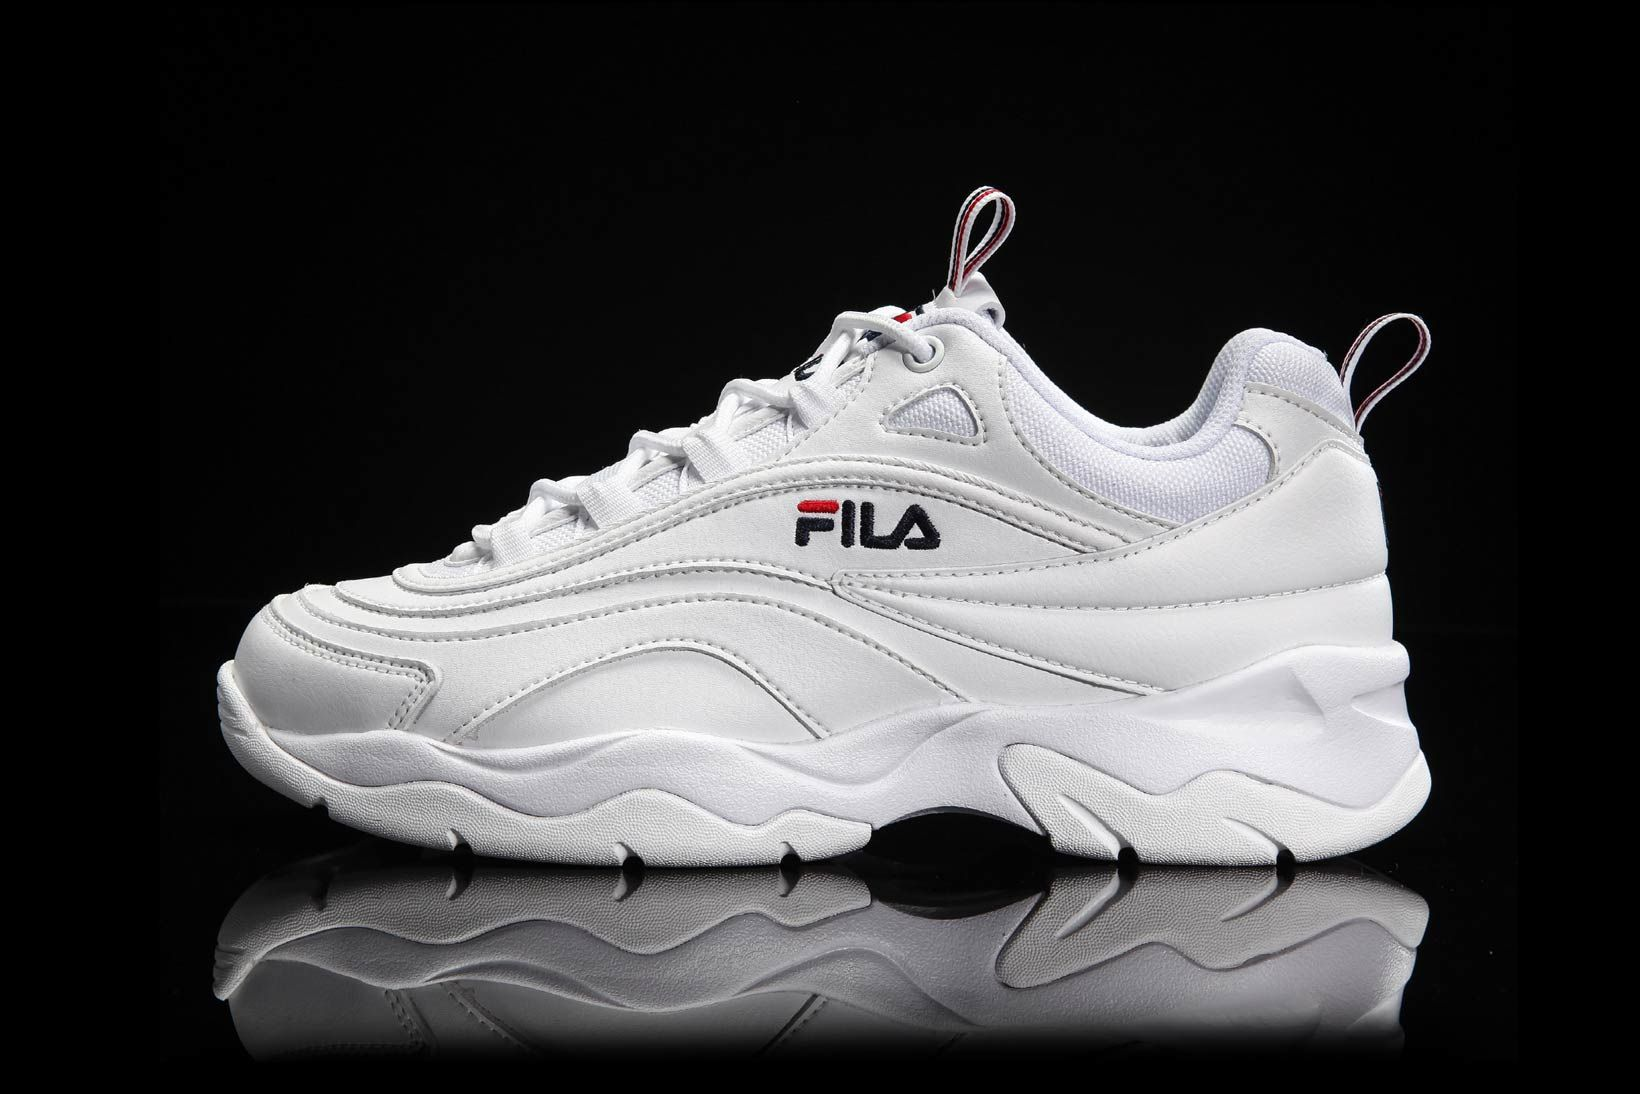 67eb802448f5 Here s Your First Look at FILA s All-New Chunky Dad Shoe – The FILA ...